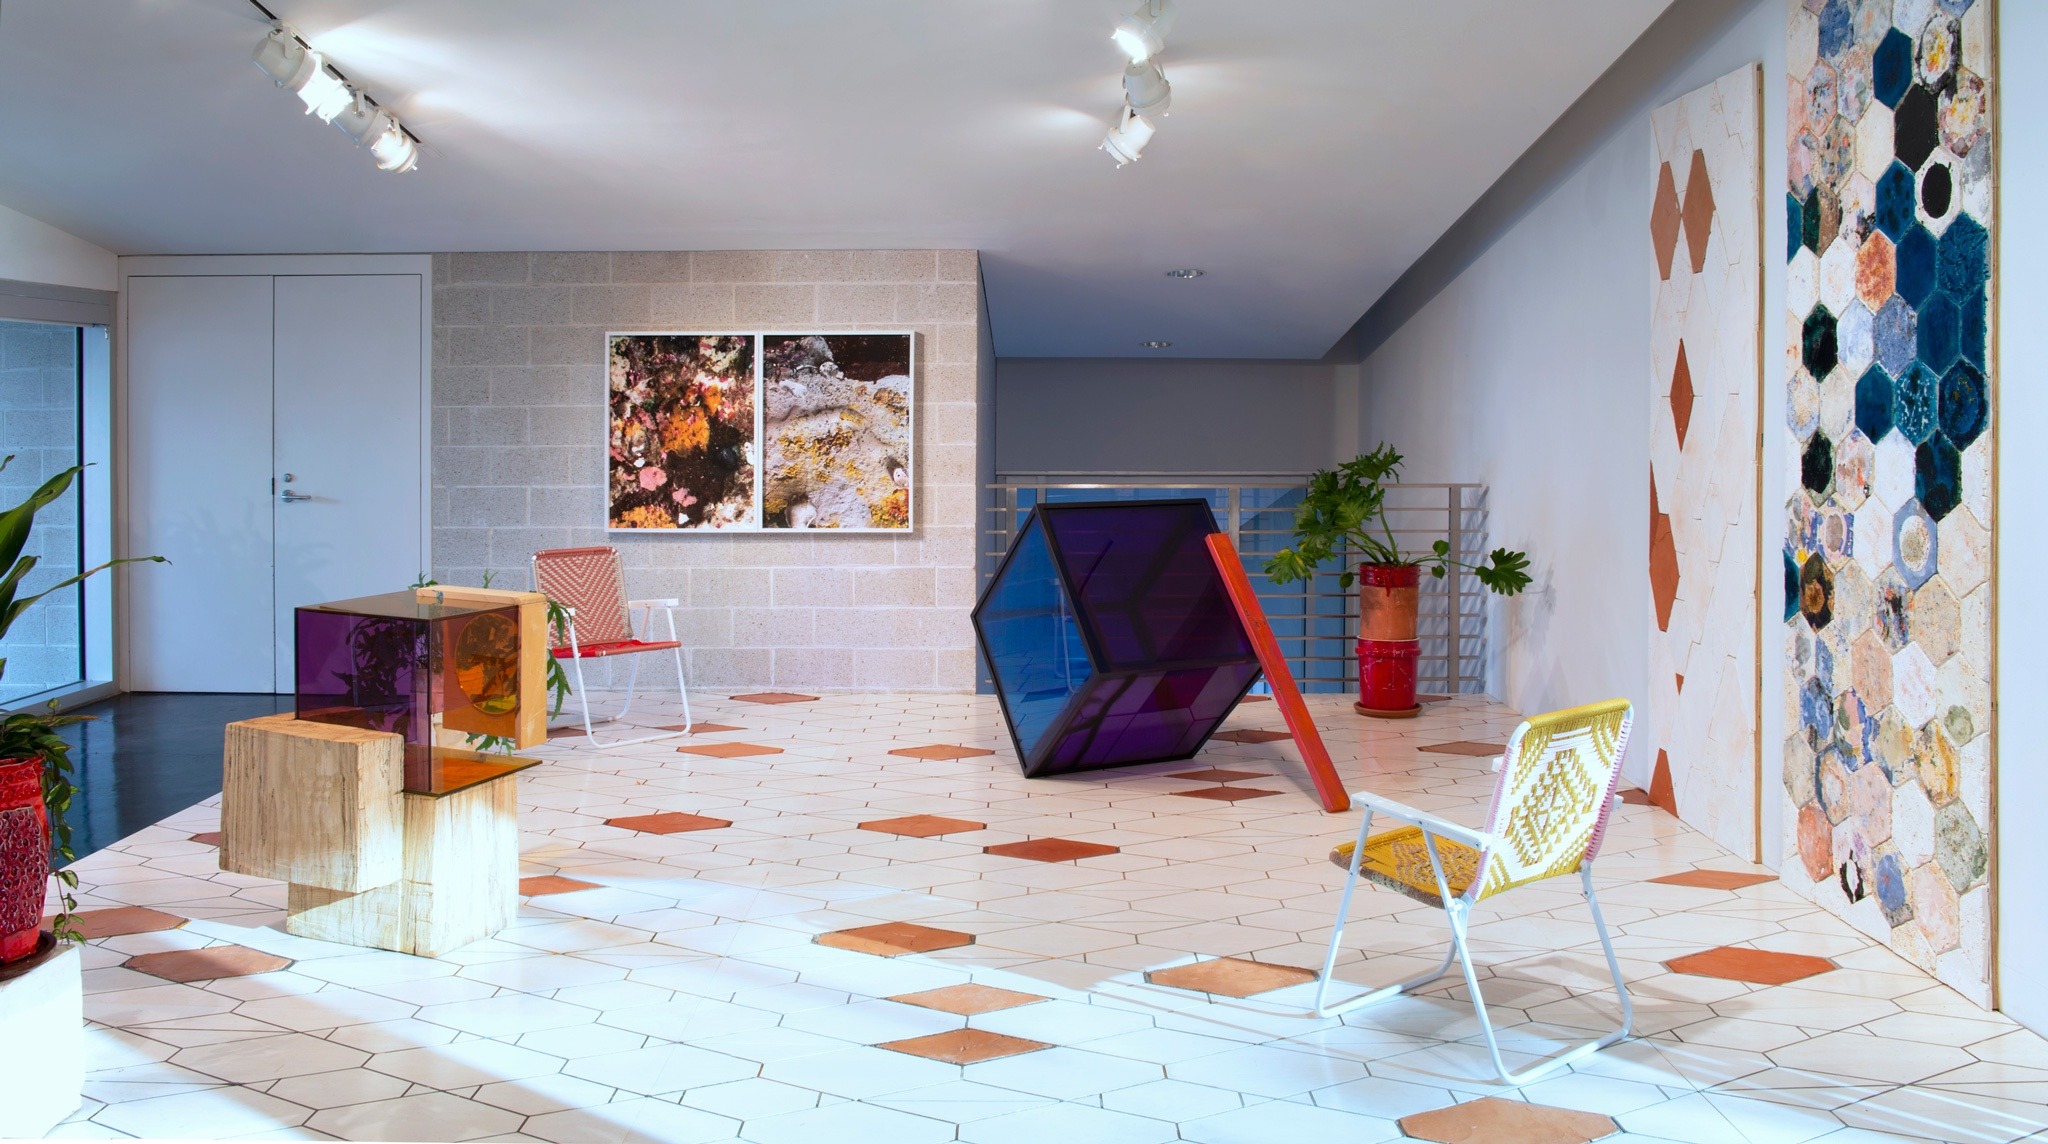 A gallery space with a tiled floor, sculptures, plants, and chairs throughout the room. Art hangs on the back wall.